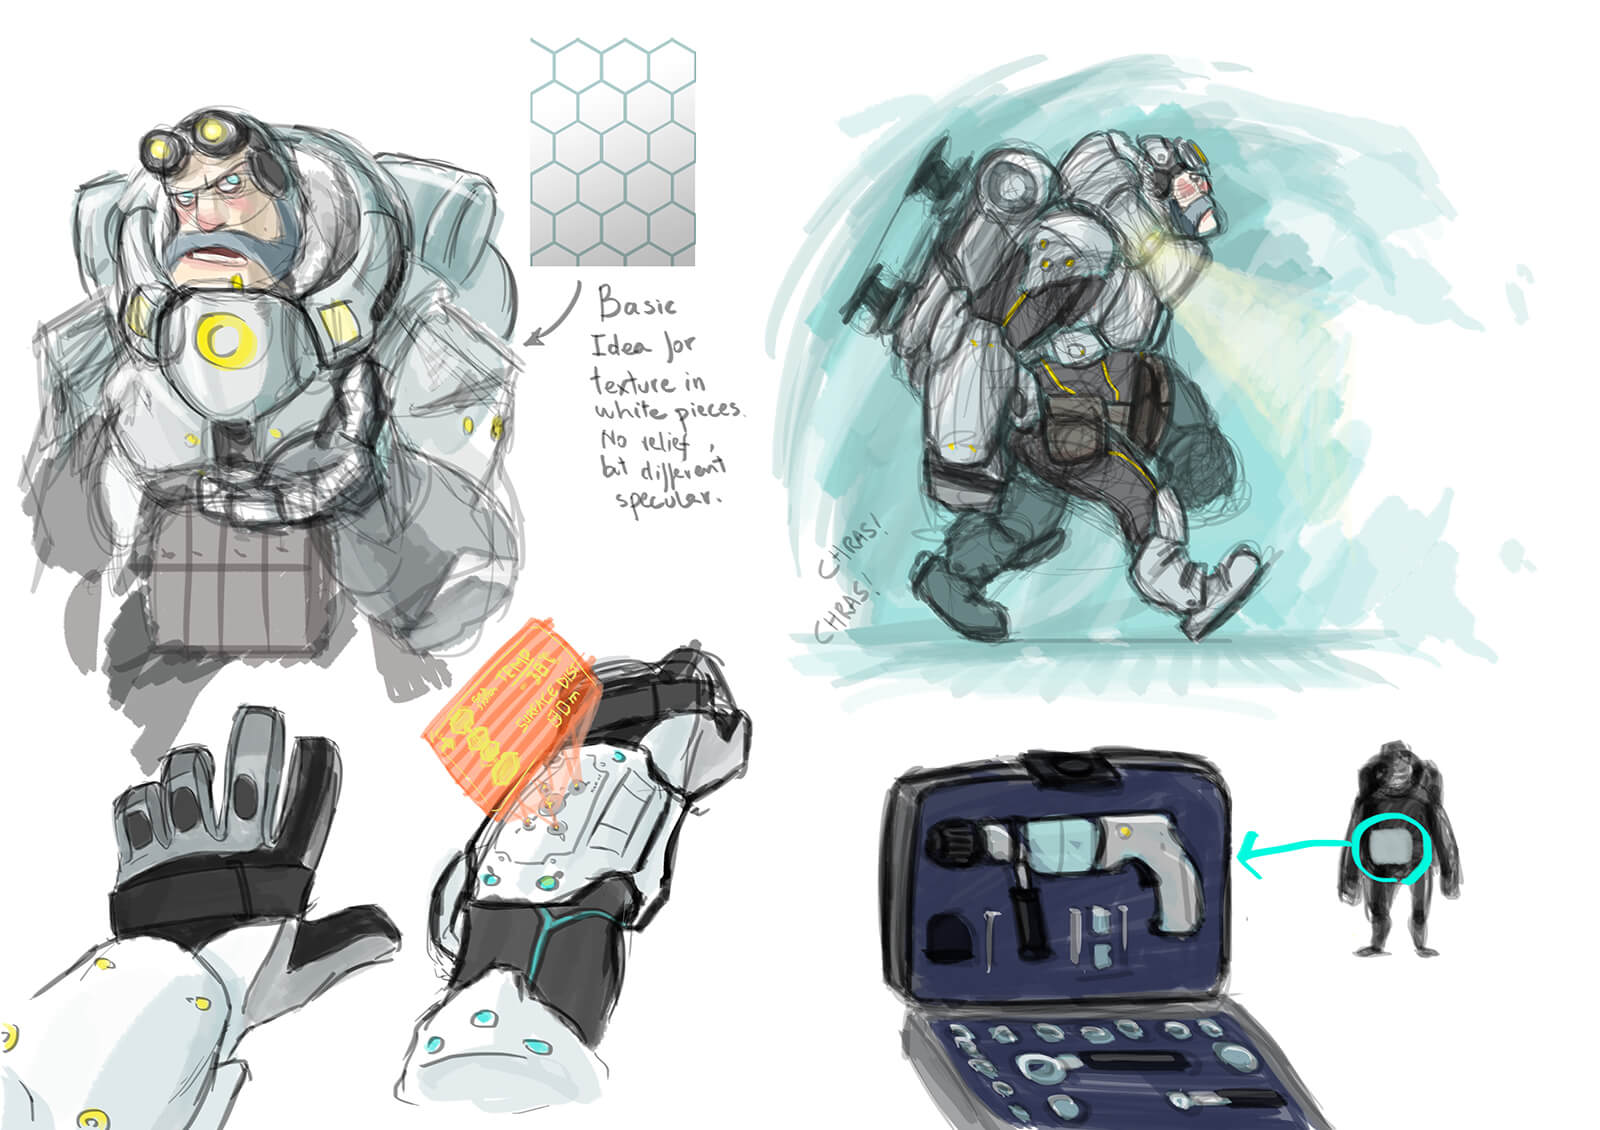 Color sketches of a bearded man in futuristic armor and goggles with details of various equipment on the armor